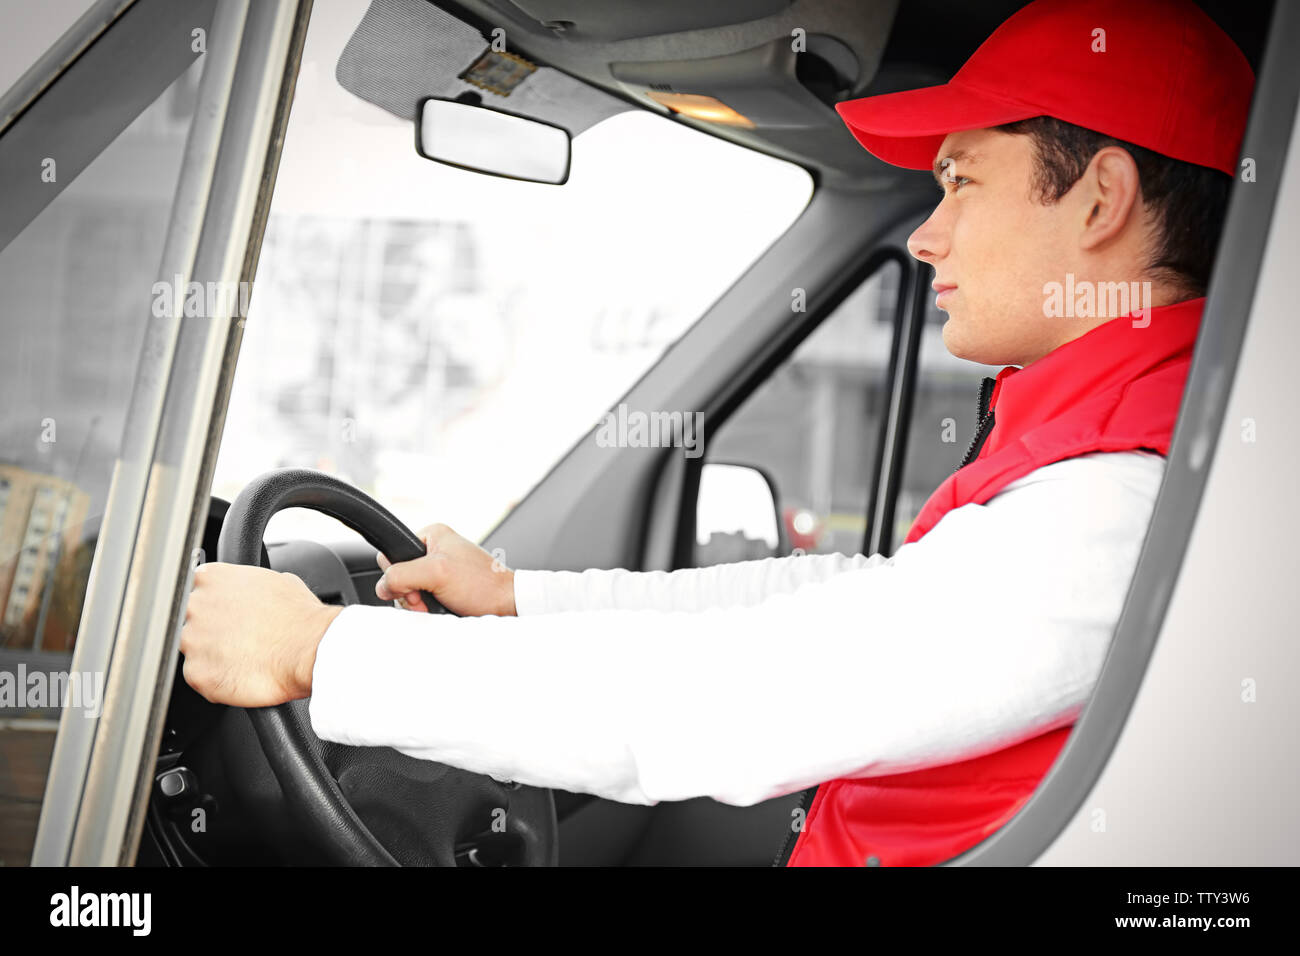 Young male courier driving delivery service van - Stock Image